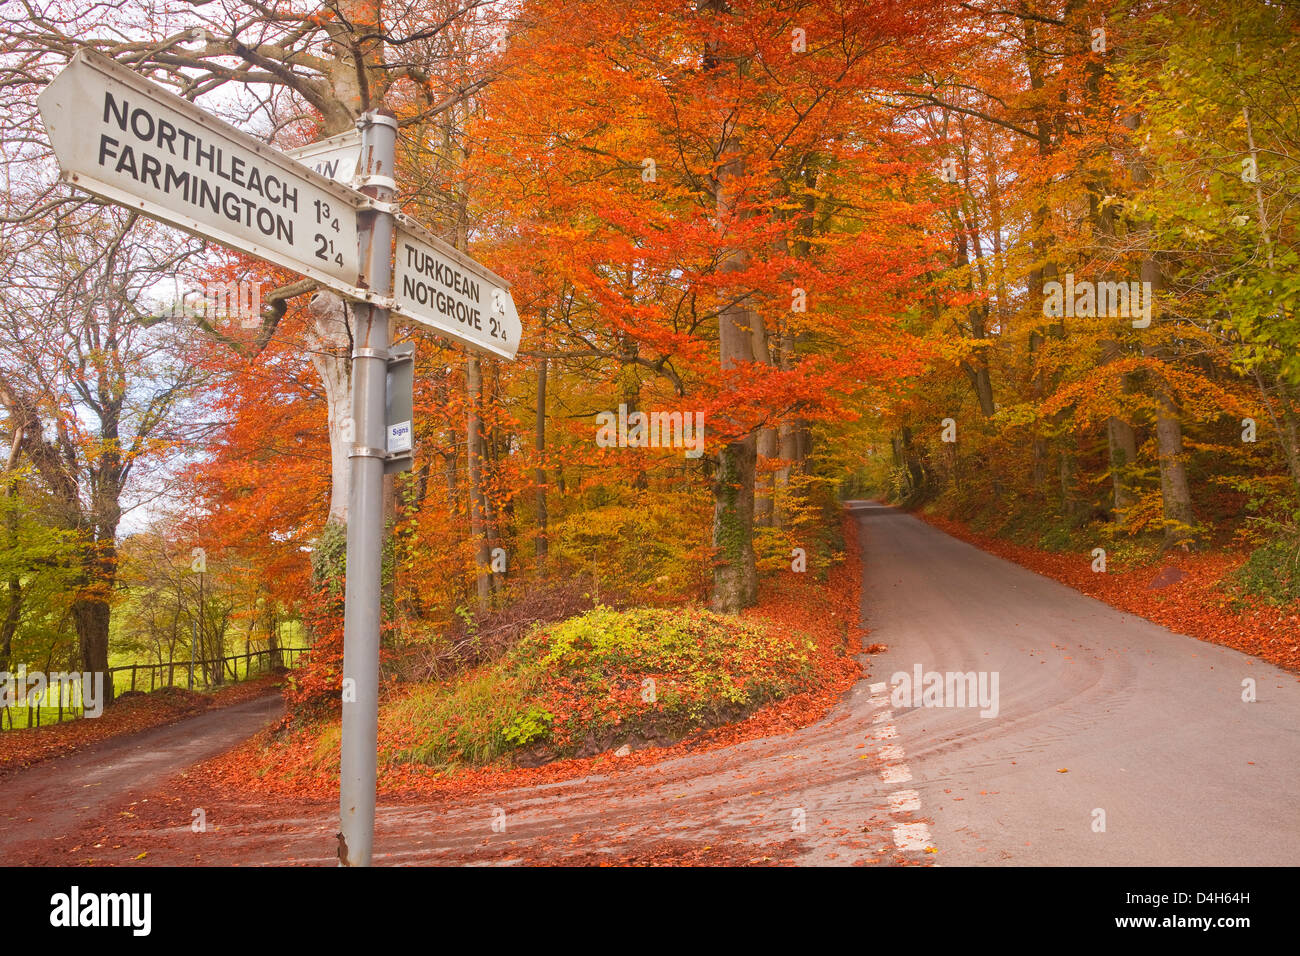 Autumn colours in the beech trees on the road to Turkdean in the Cotwolds, Gloucestershire, England, UK - Stock Image